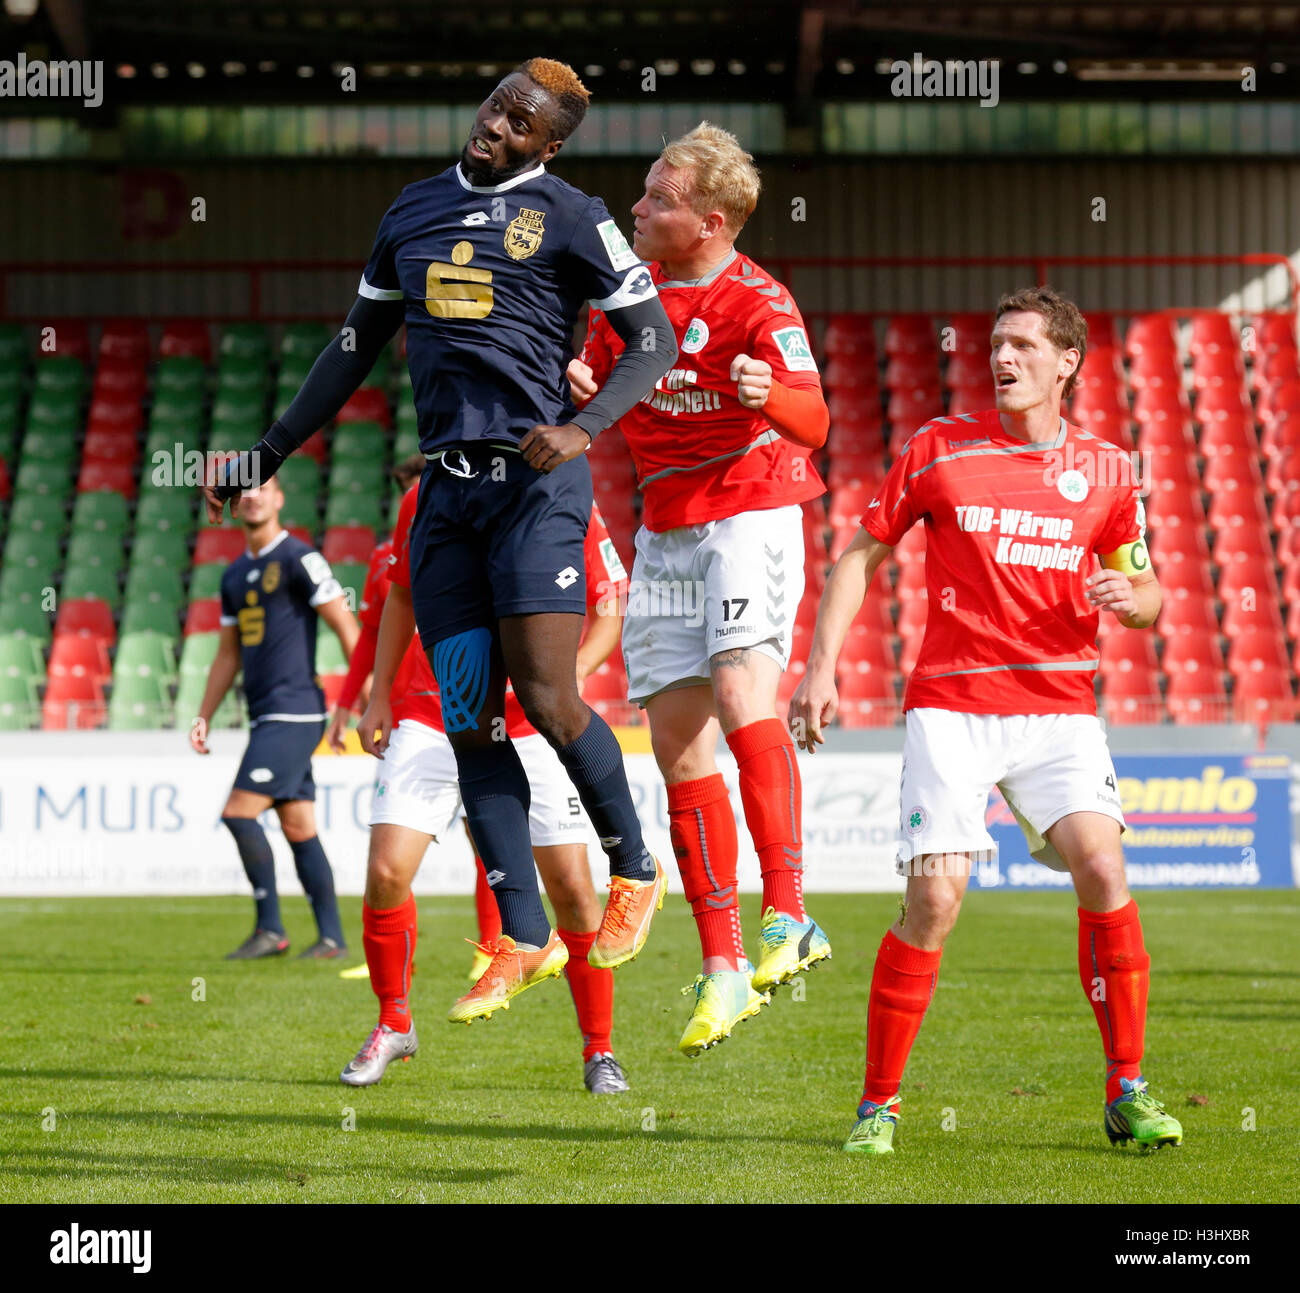 sports, football, Regional League West, 2016/2017, Rot Weiss Oberhausen versus Bonner SC 5:1, Stadium Niederrhein - Stock Image